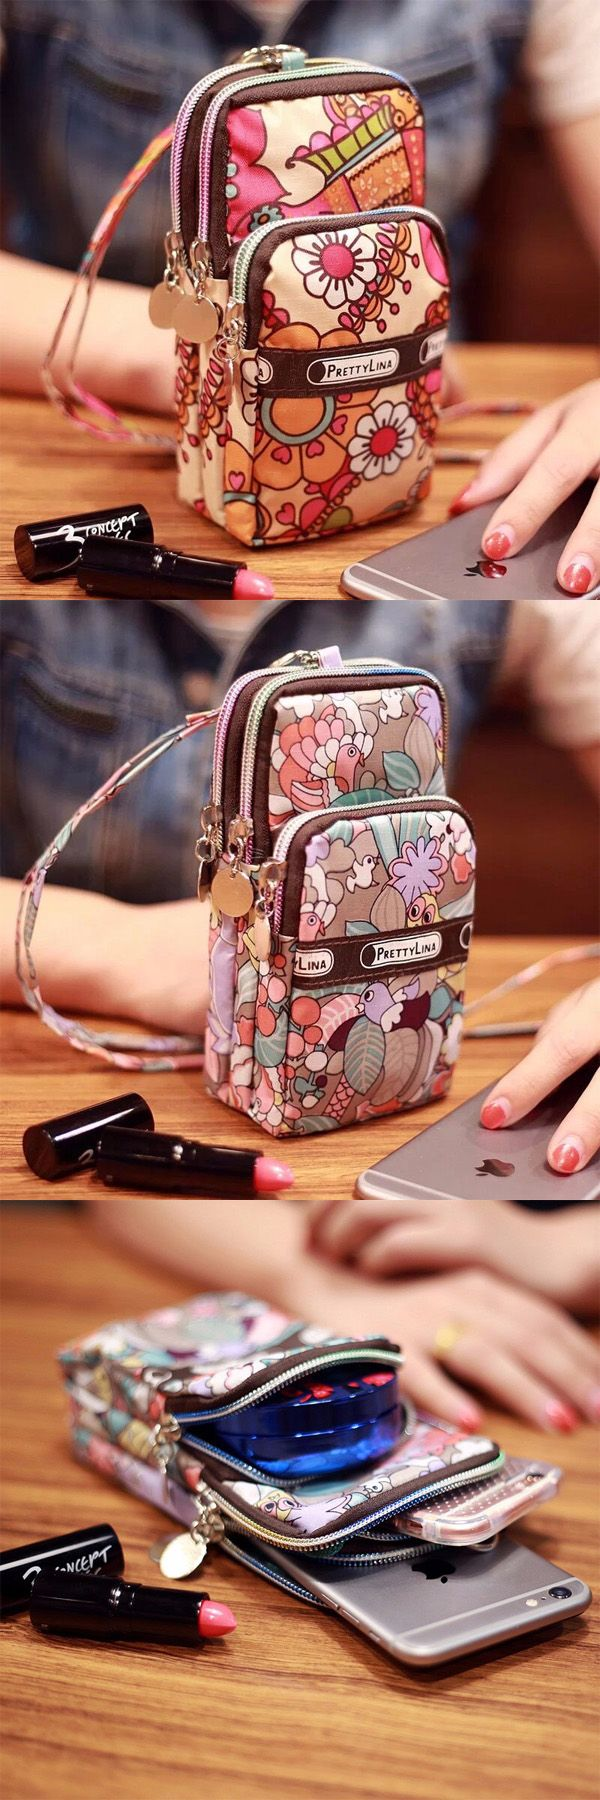 US$10.99+Free shipping.Mini Fashion Phone Bag, Shoulder Bag, Sports Bag.Waterproof Nylon Fabric, Smooth&Soft, Excellent&Durable. Large capacity, It has three layers for you to carry smartphone, earphone, money, key and makeup, etc.